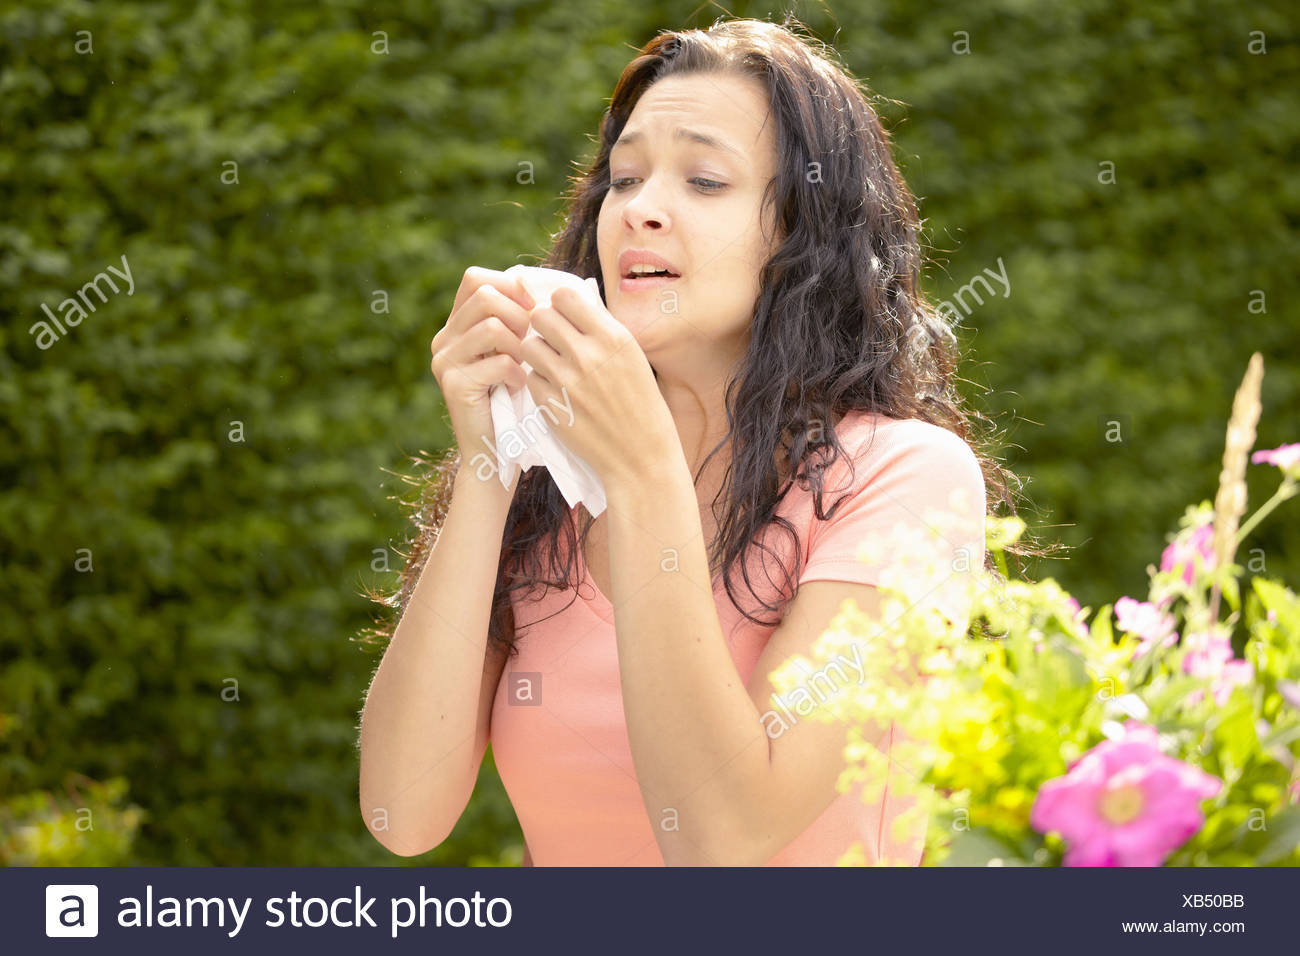 Girl about to sneeze into tissue - Stock Image